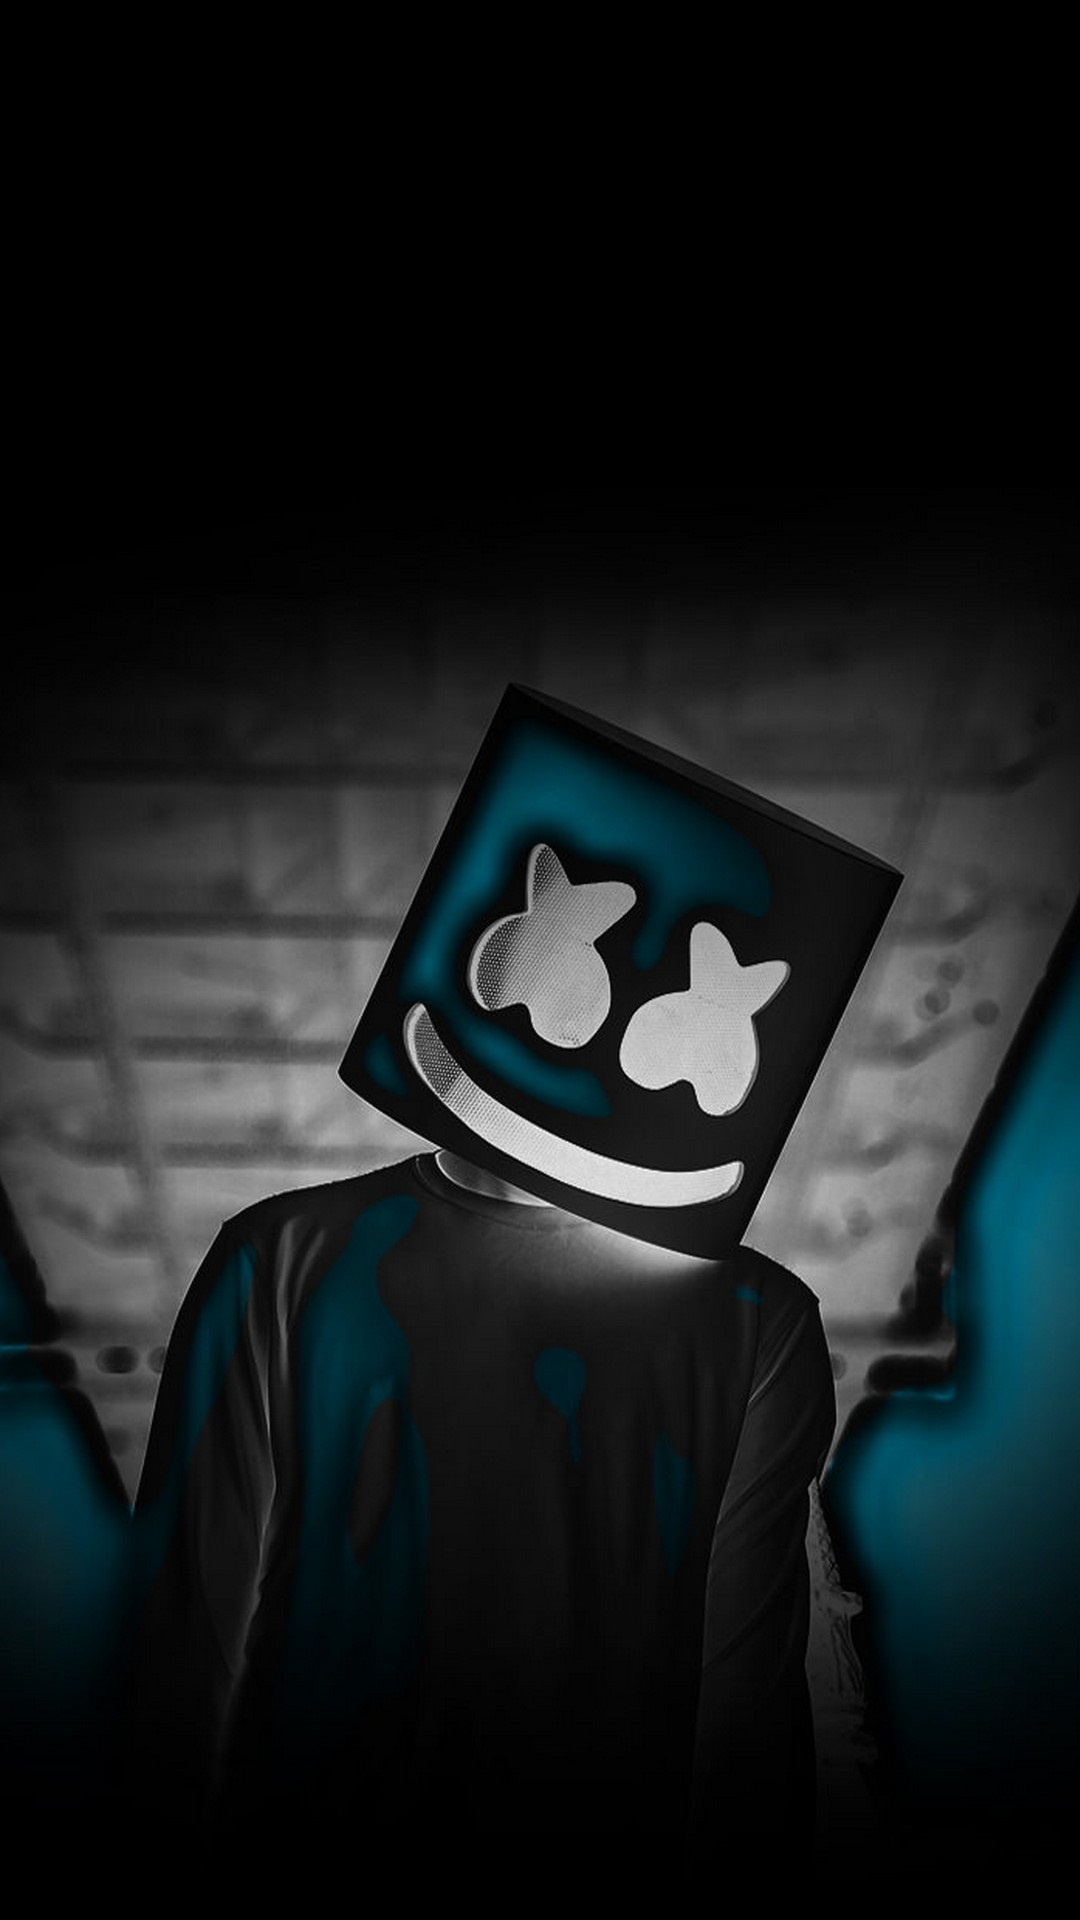 Android Wallpaper HD Marshmello   2020 Android Wallpapers 1080x1920